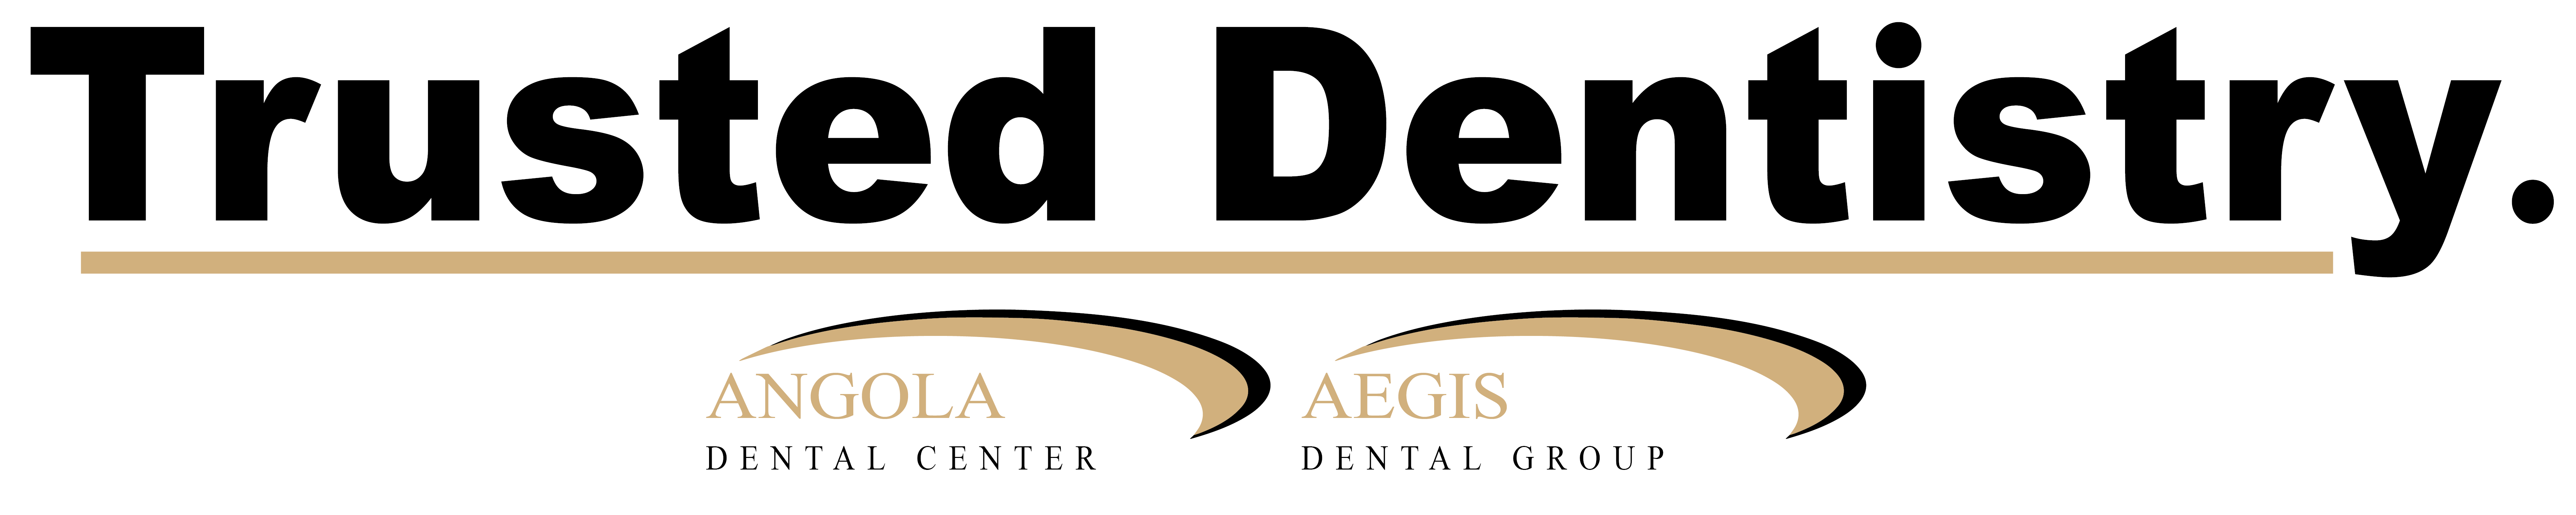 Aegis Trusted Dentistry.